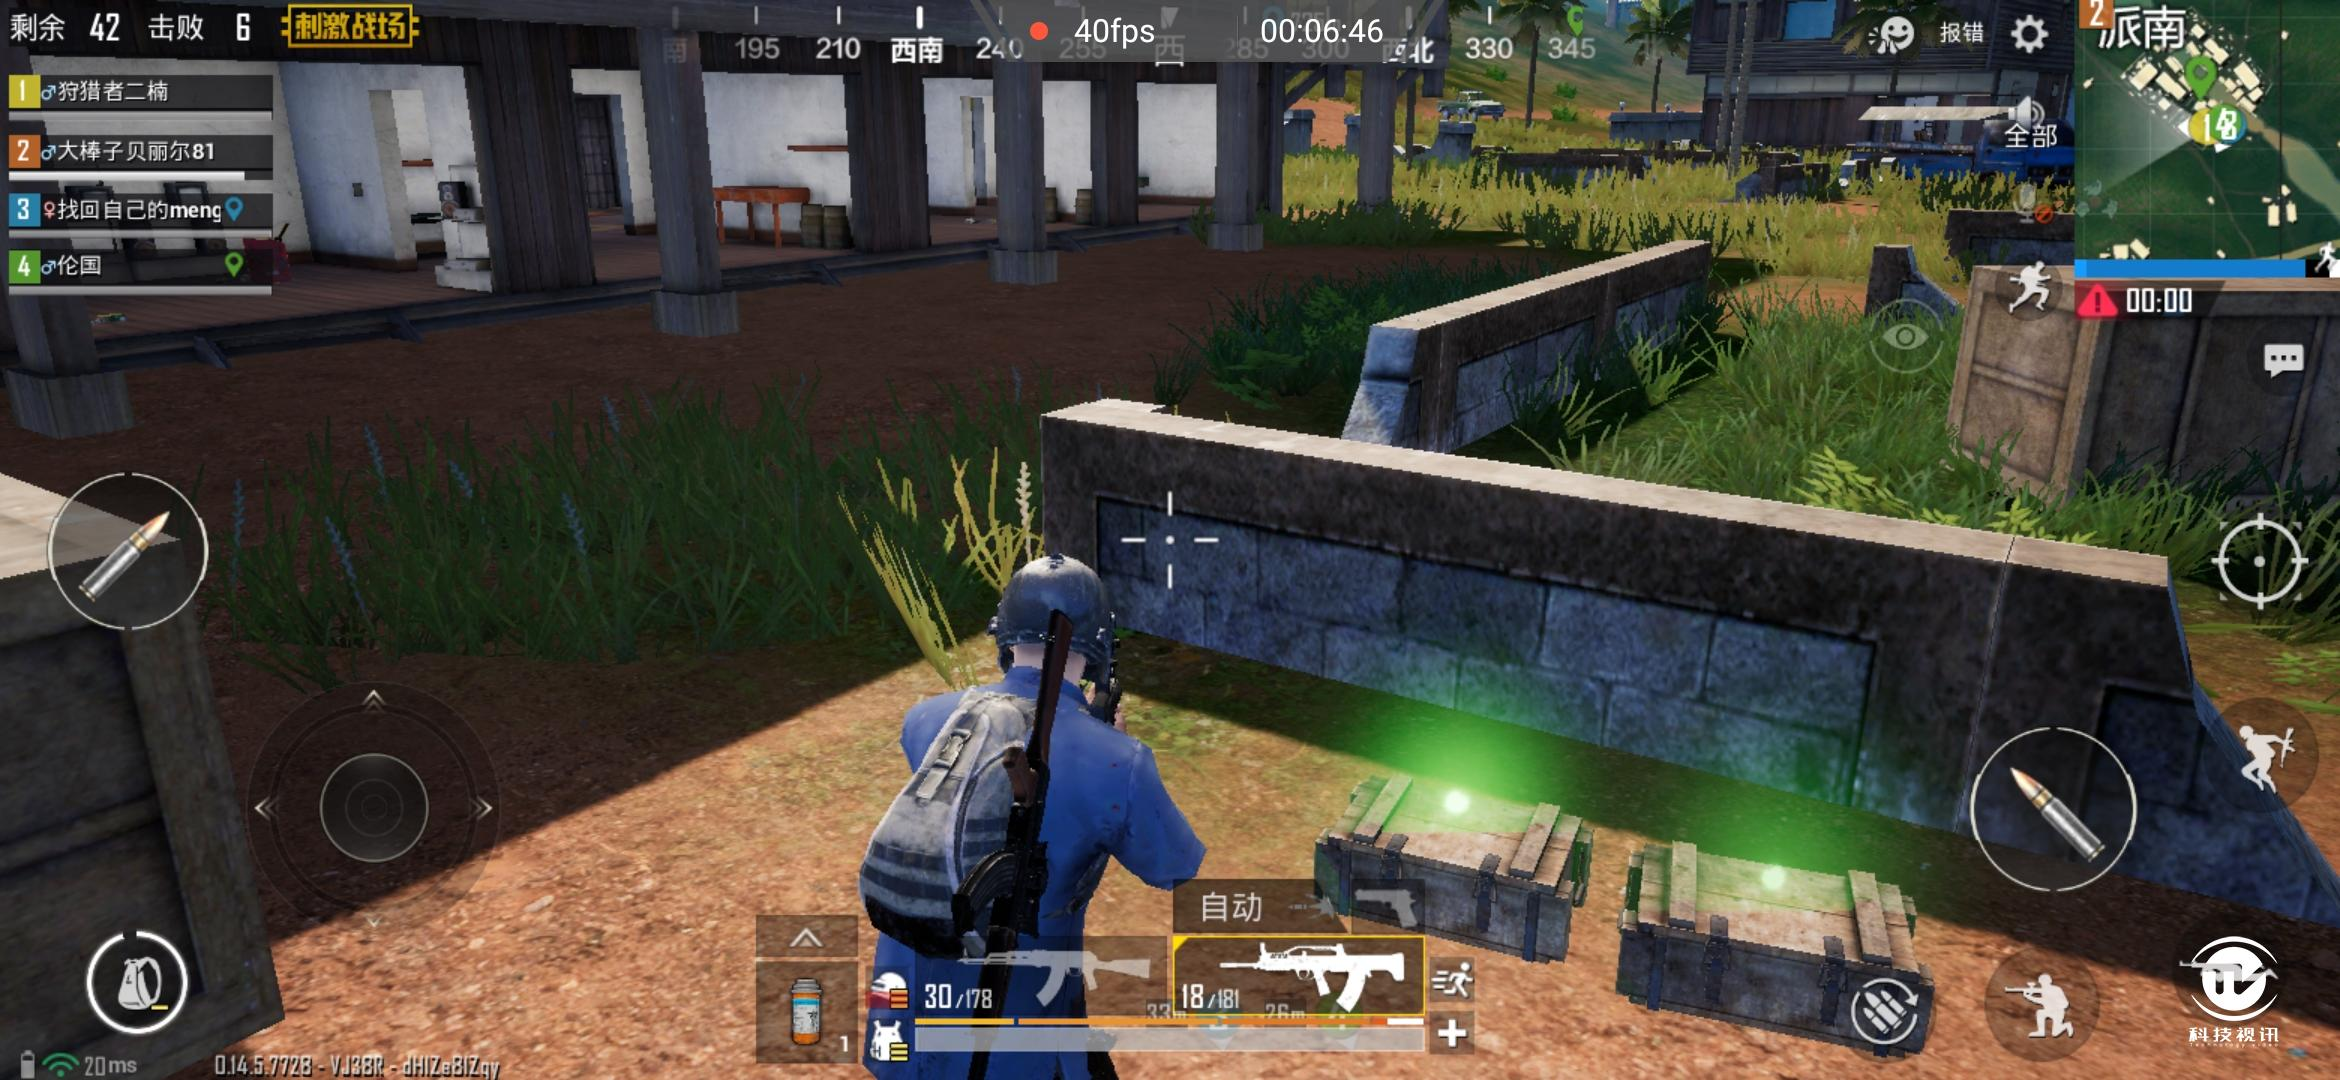 Screenshot_20190506_135047_com.tencent.tmgp.pubgmhd.jpg